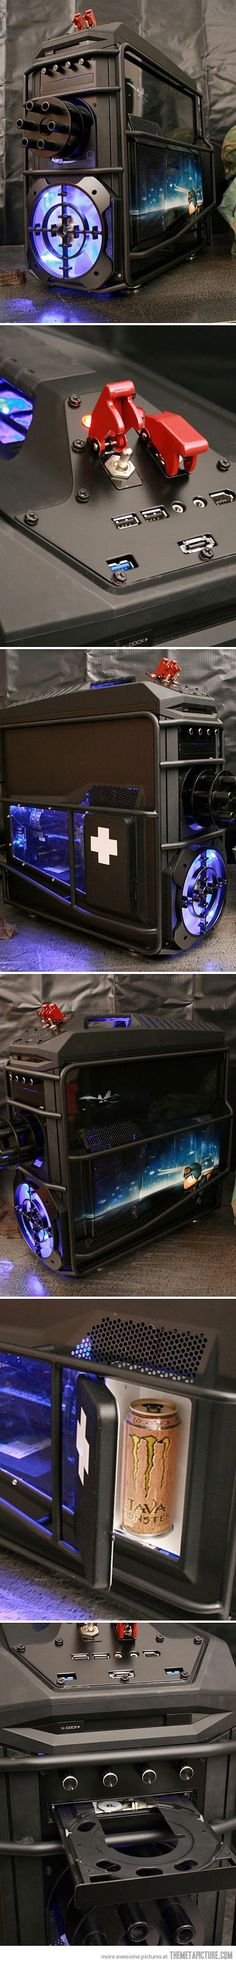 Cool custom PC case.